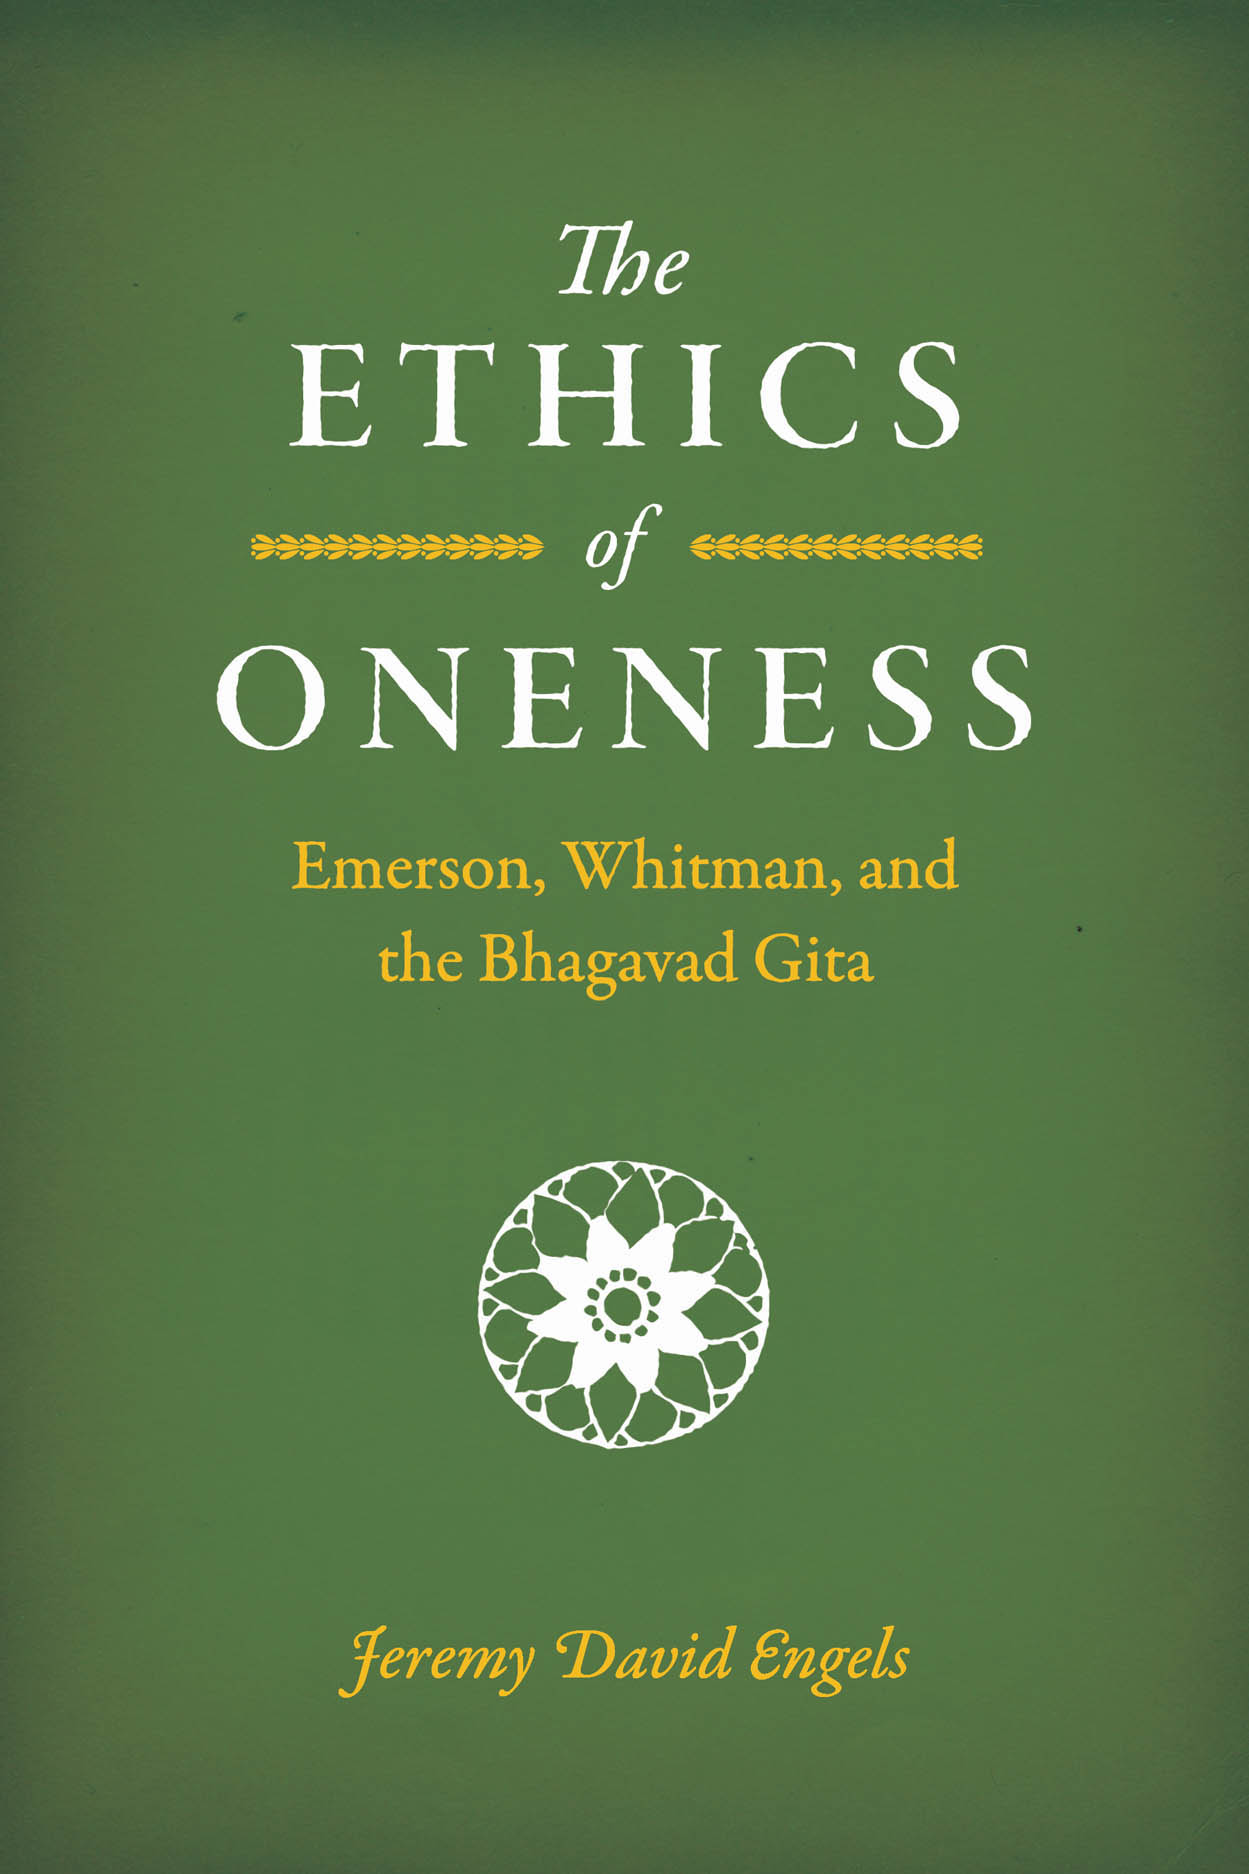 The Ethics of Oneness: Emerson, Whitman, and the Bhagavad Gita